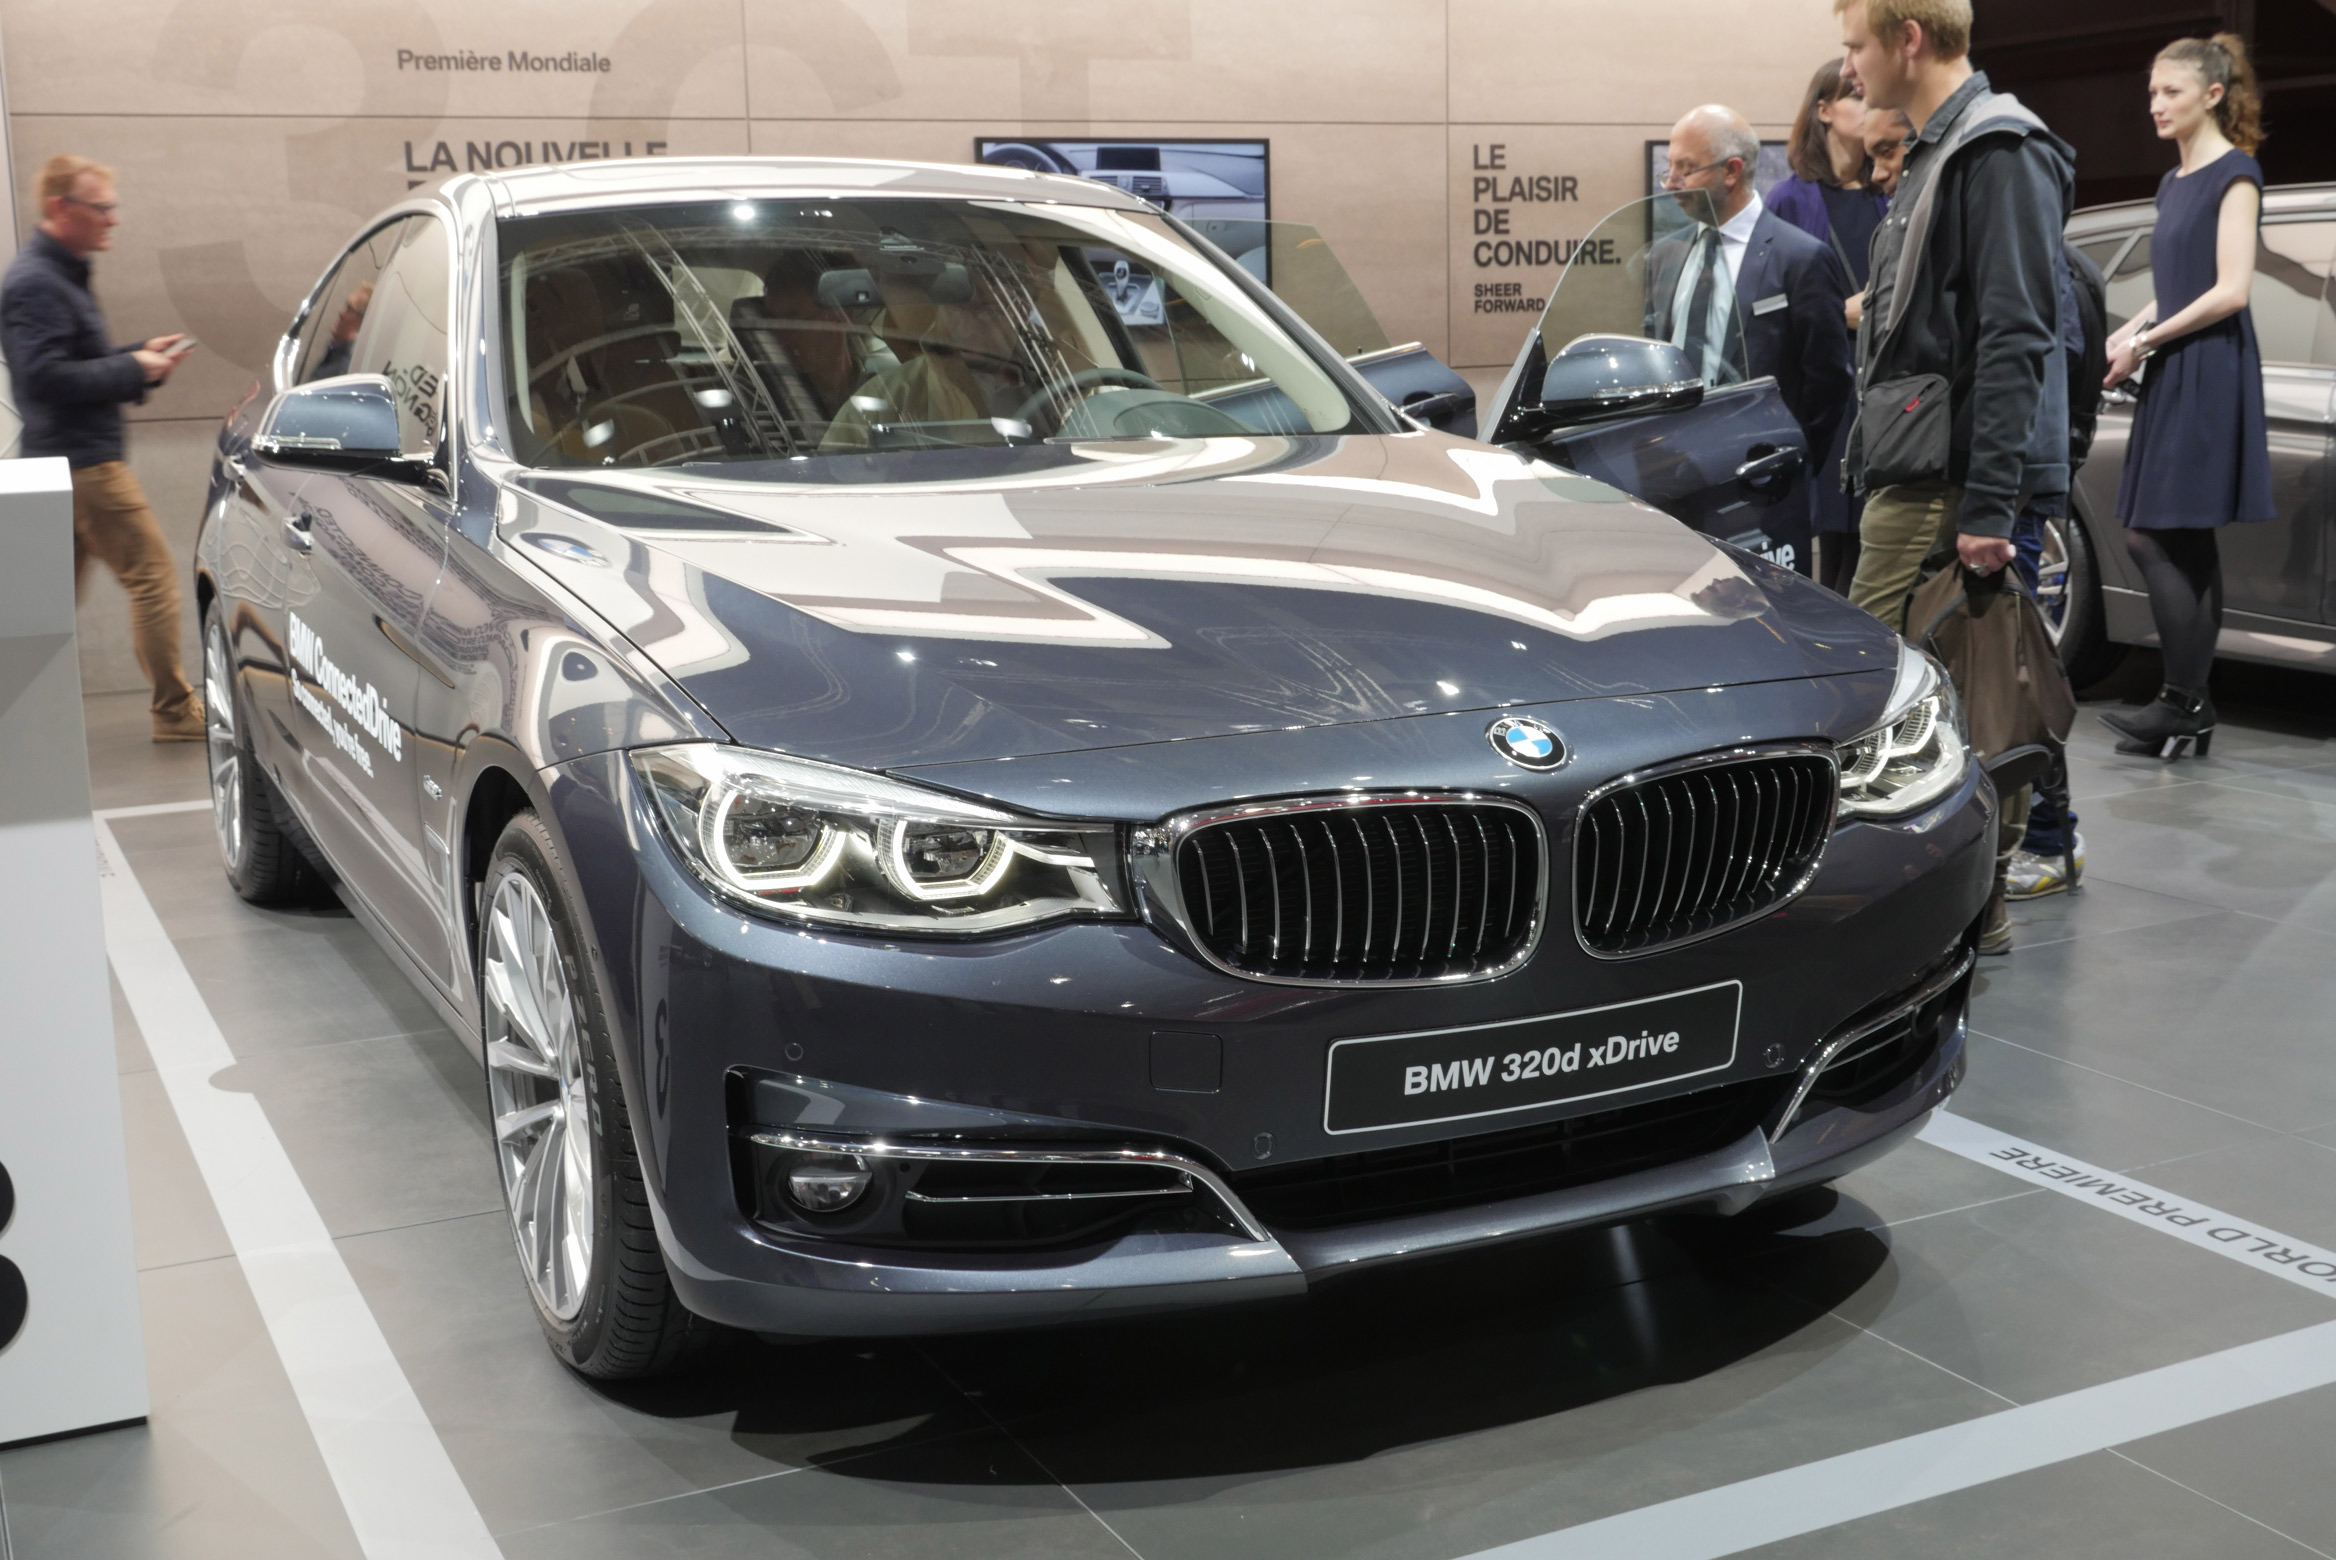 BMW 320d xDrive Paris Motor Show 2016